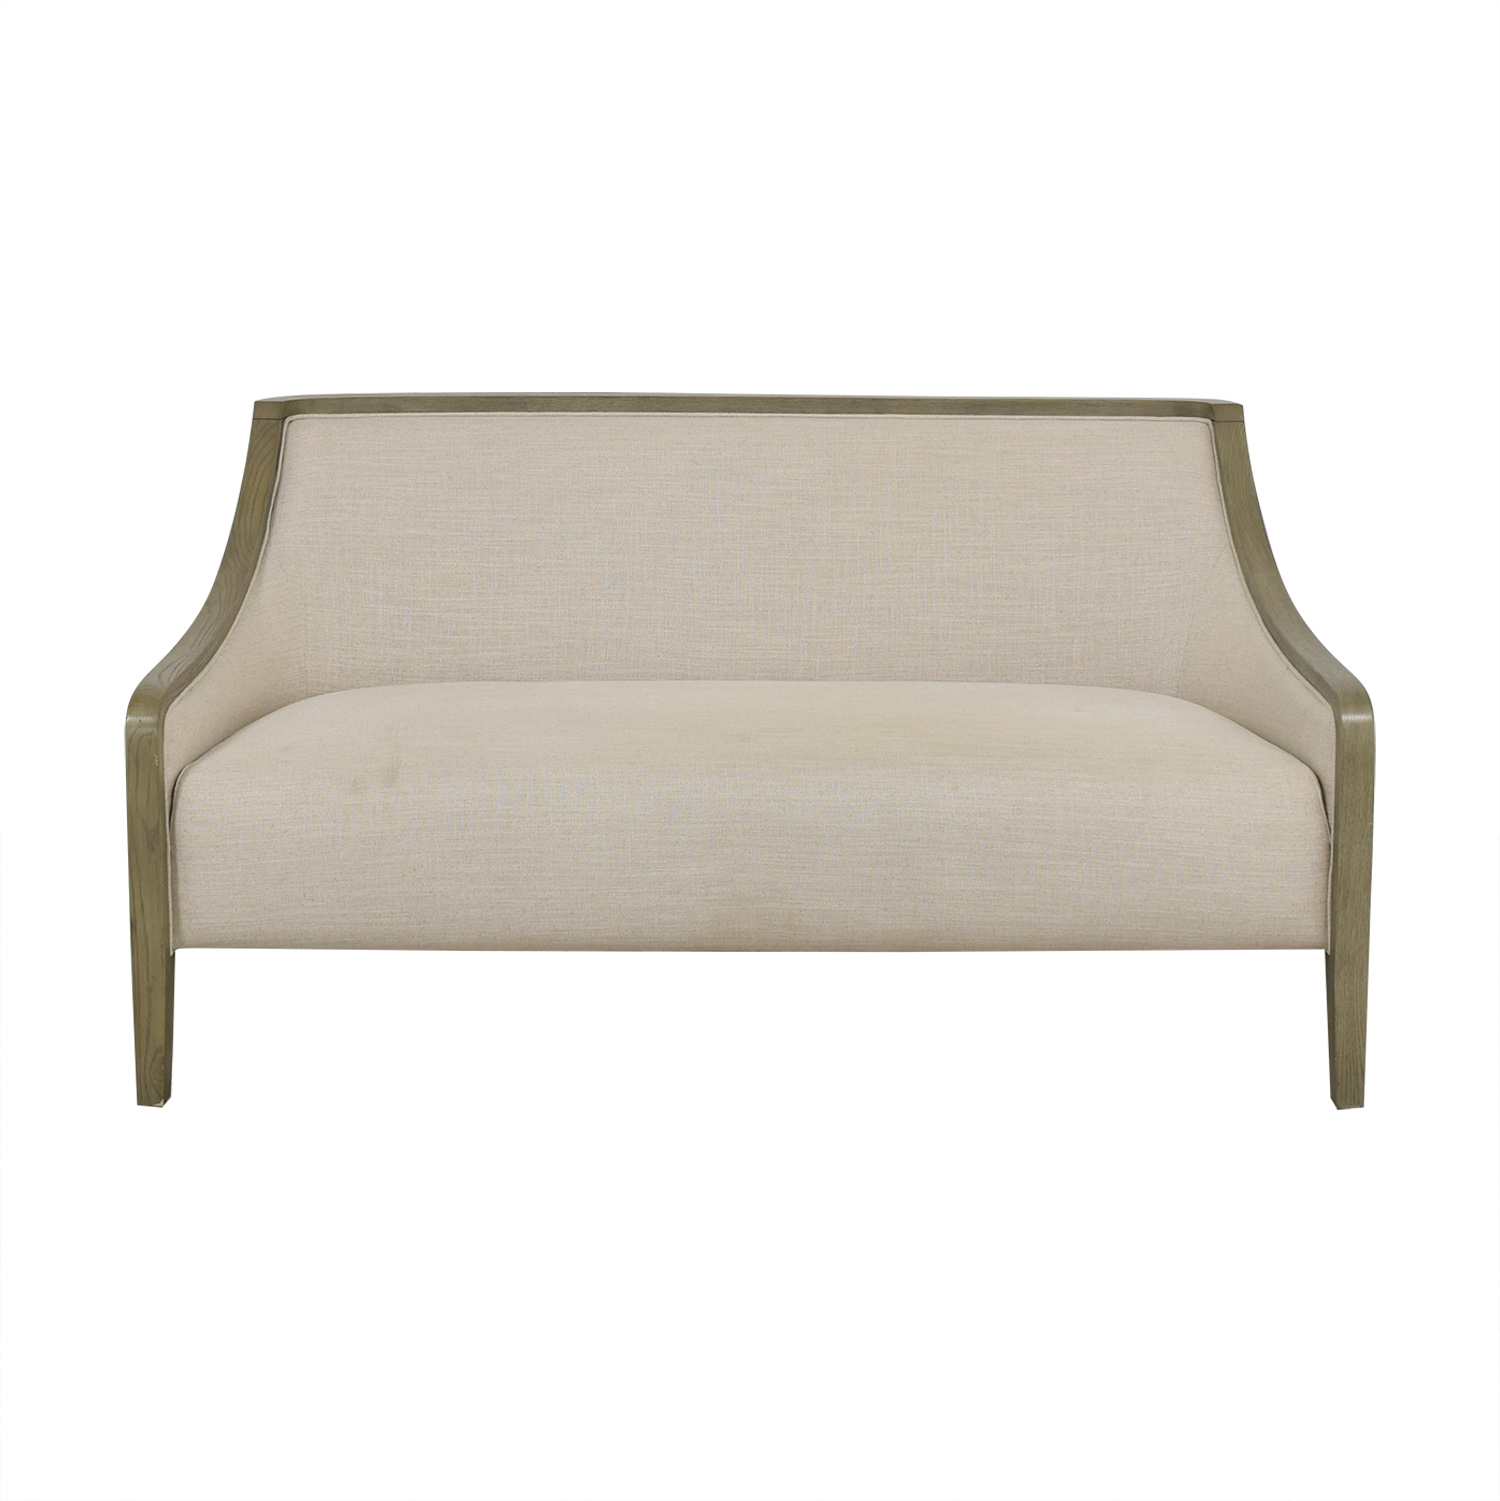 buy Crate & Barrel Elegant Upholstered Loveseat Crate & Barrel Loveseats